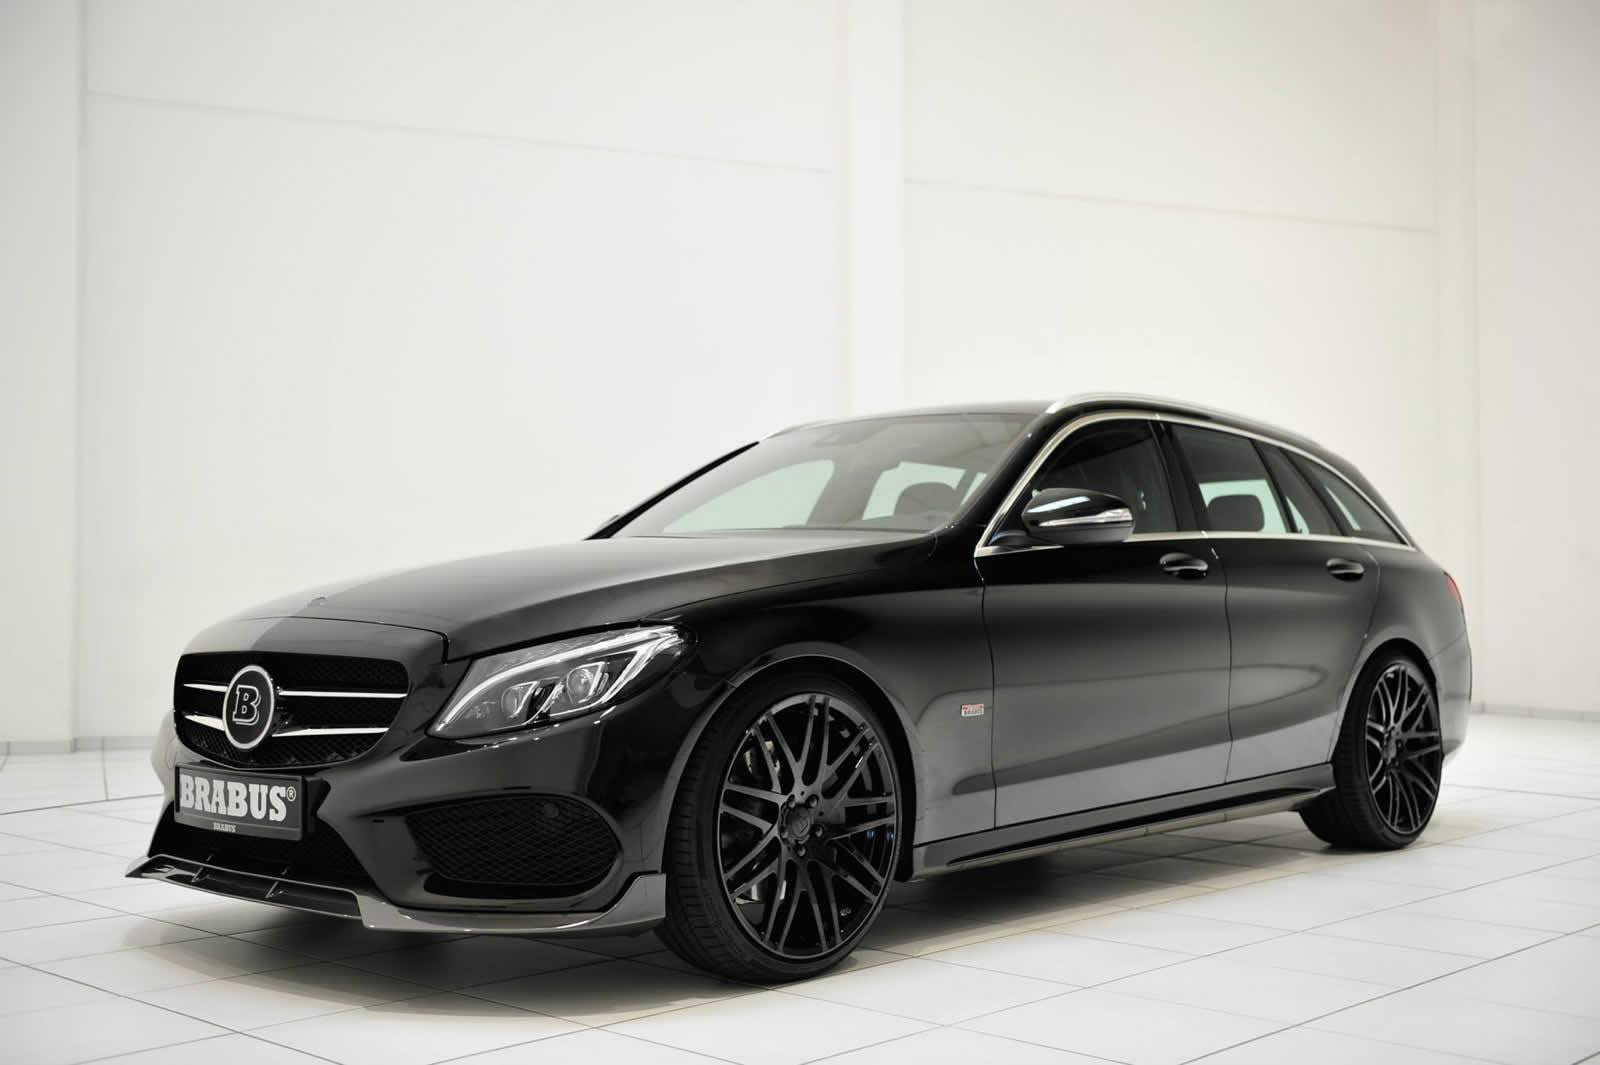 Brabus mercedes benz c class wagon for Black mercedes benz c class